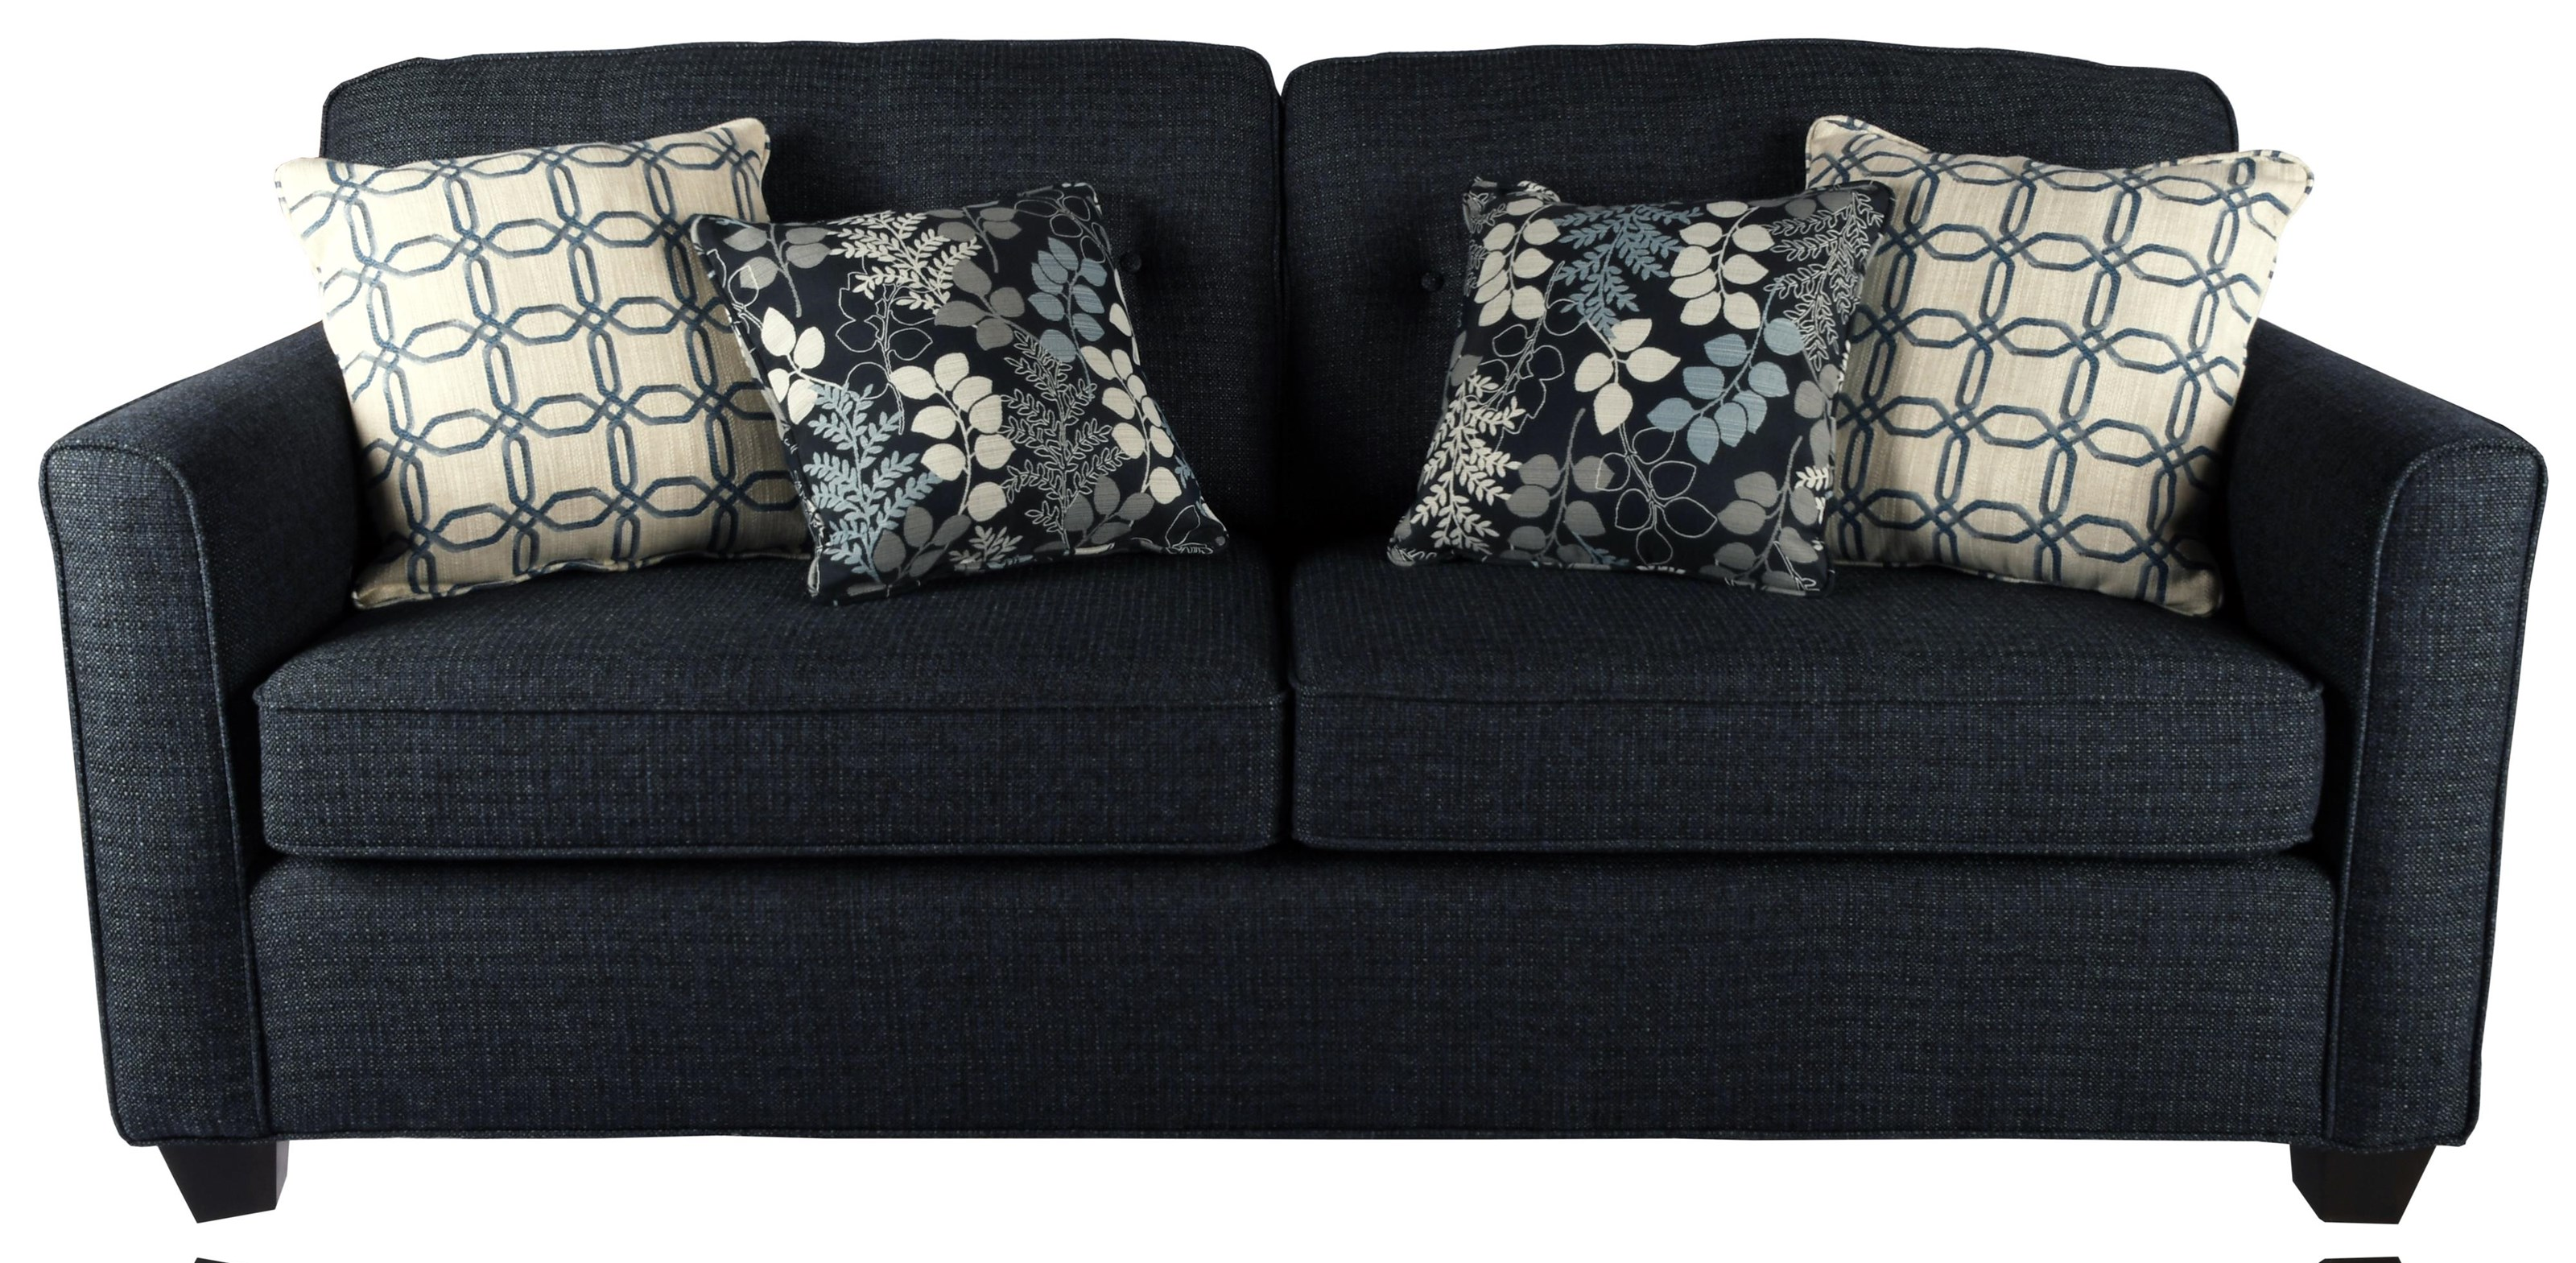 Loki Sofa by Southside Designs at Bennett's Furniture and Mattresses